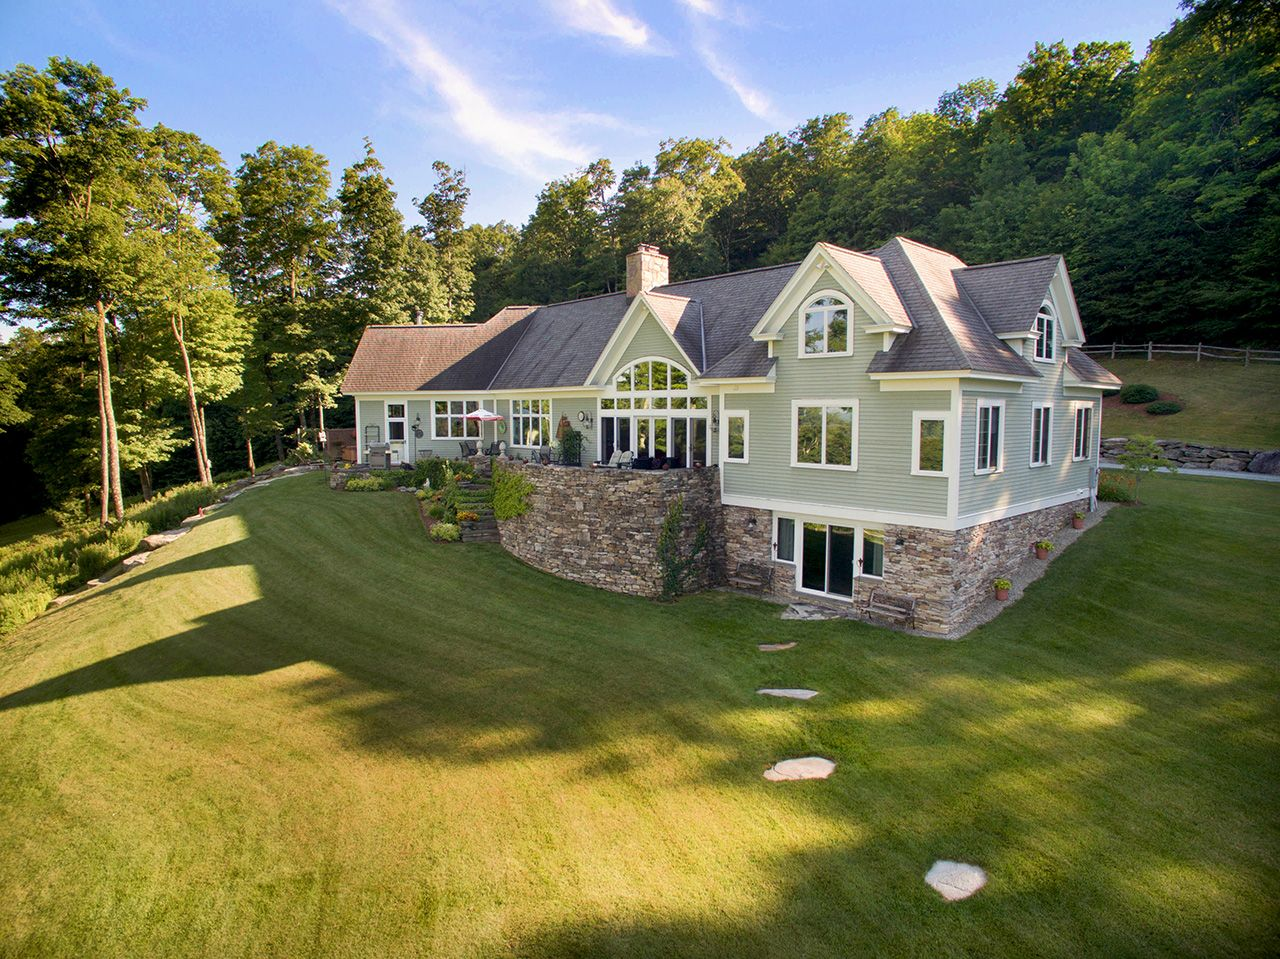 Additional photo for property listing at Turning Leaf 537 Mad Tom Notch Rd Peru, Vermont,05152 Hoa Kỳ